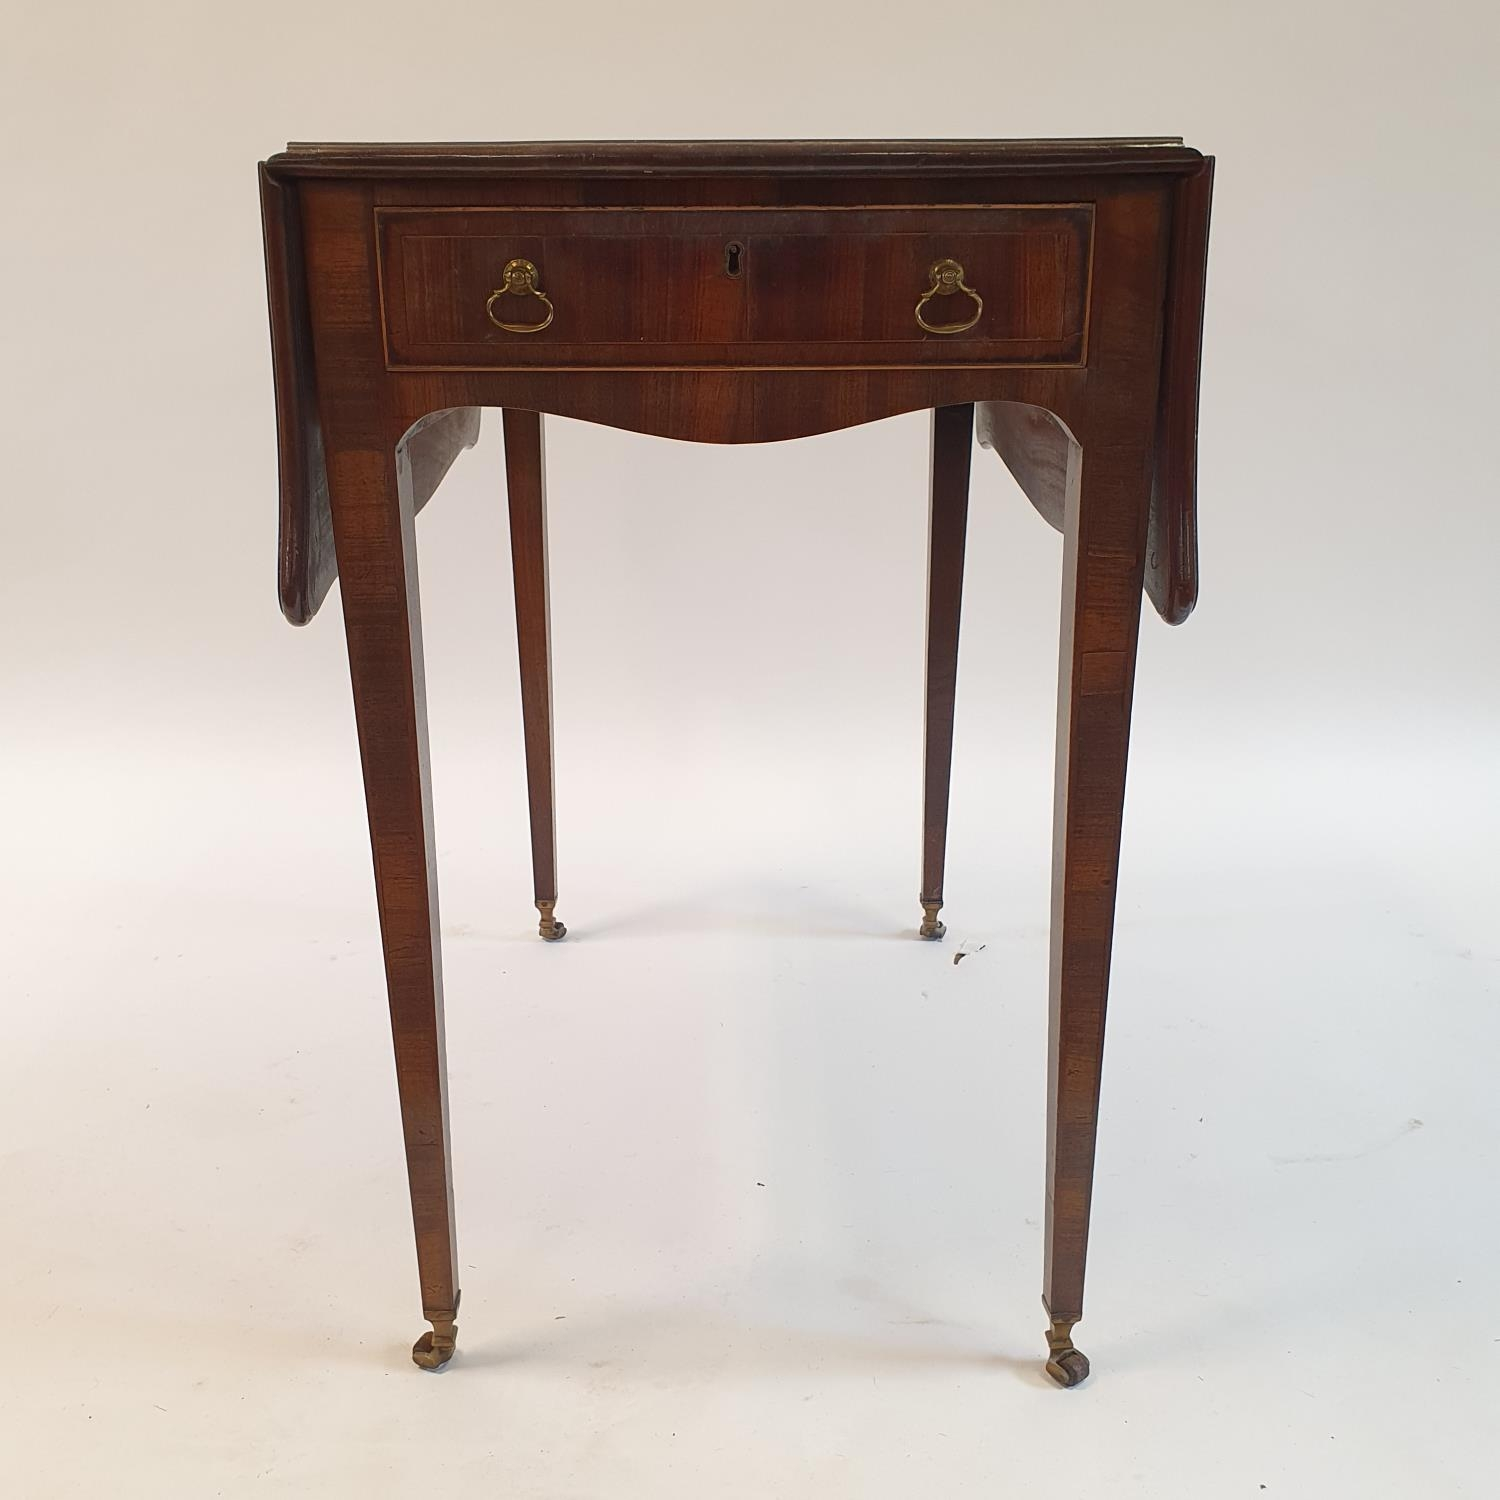 A George III mahogany butterfly top Pembroke table, of small proportions, crossbanded in rosewood,